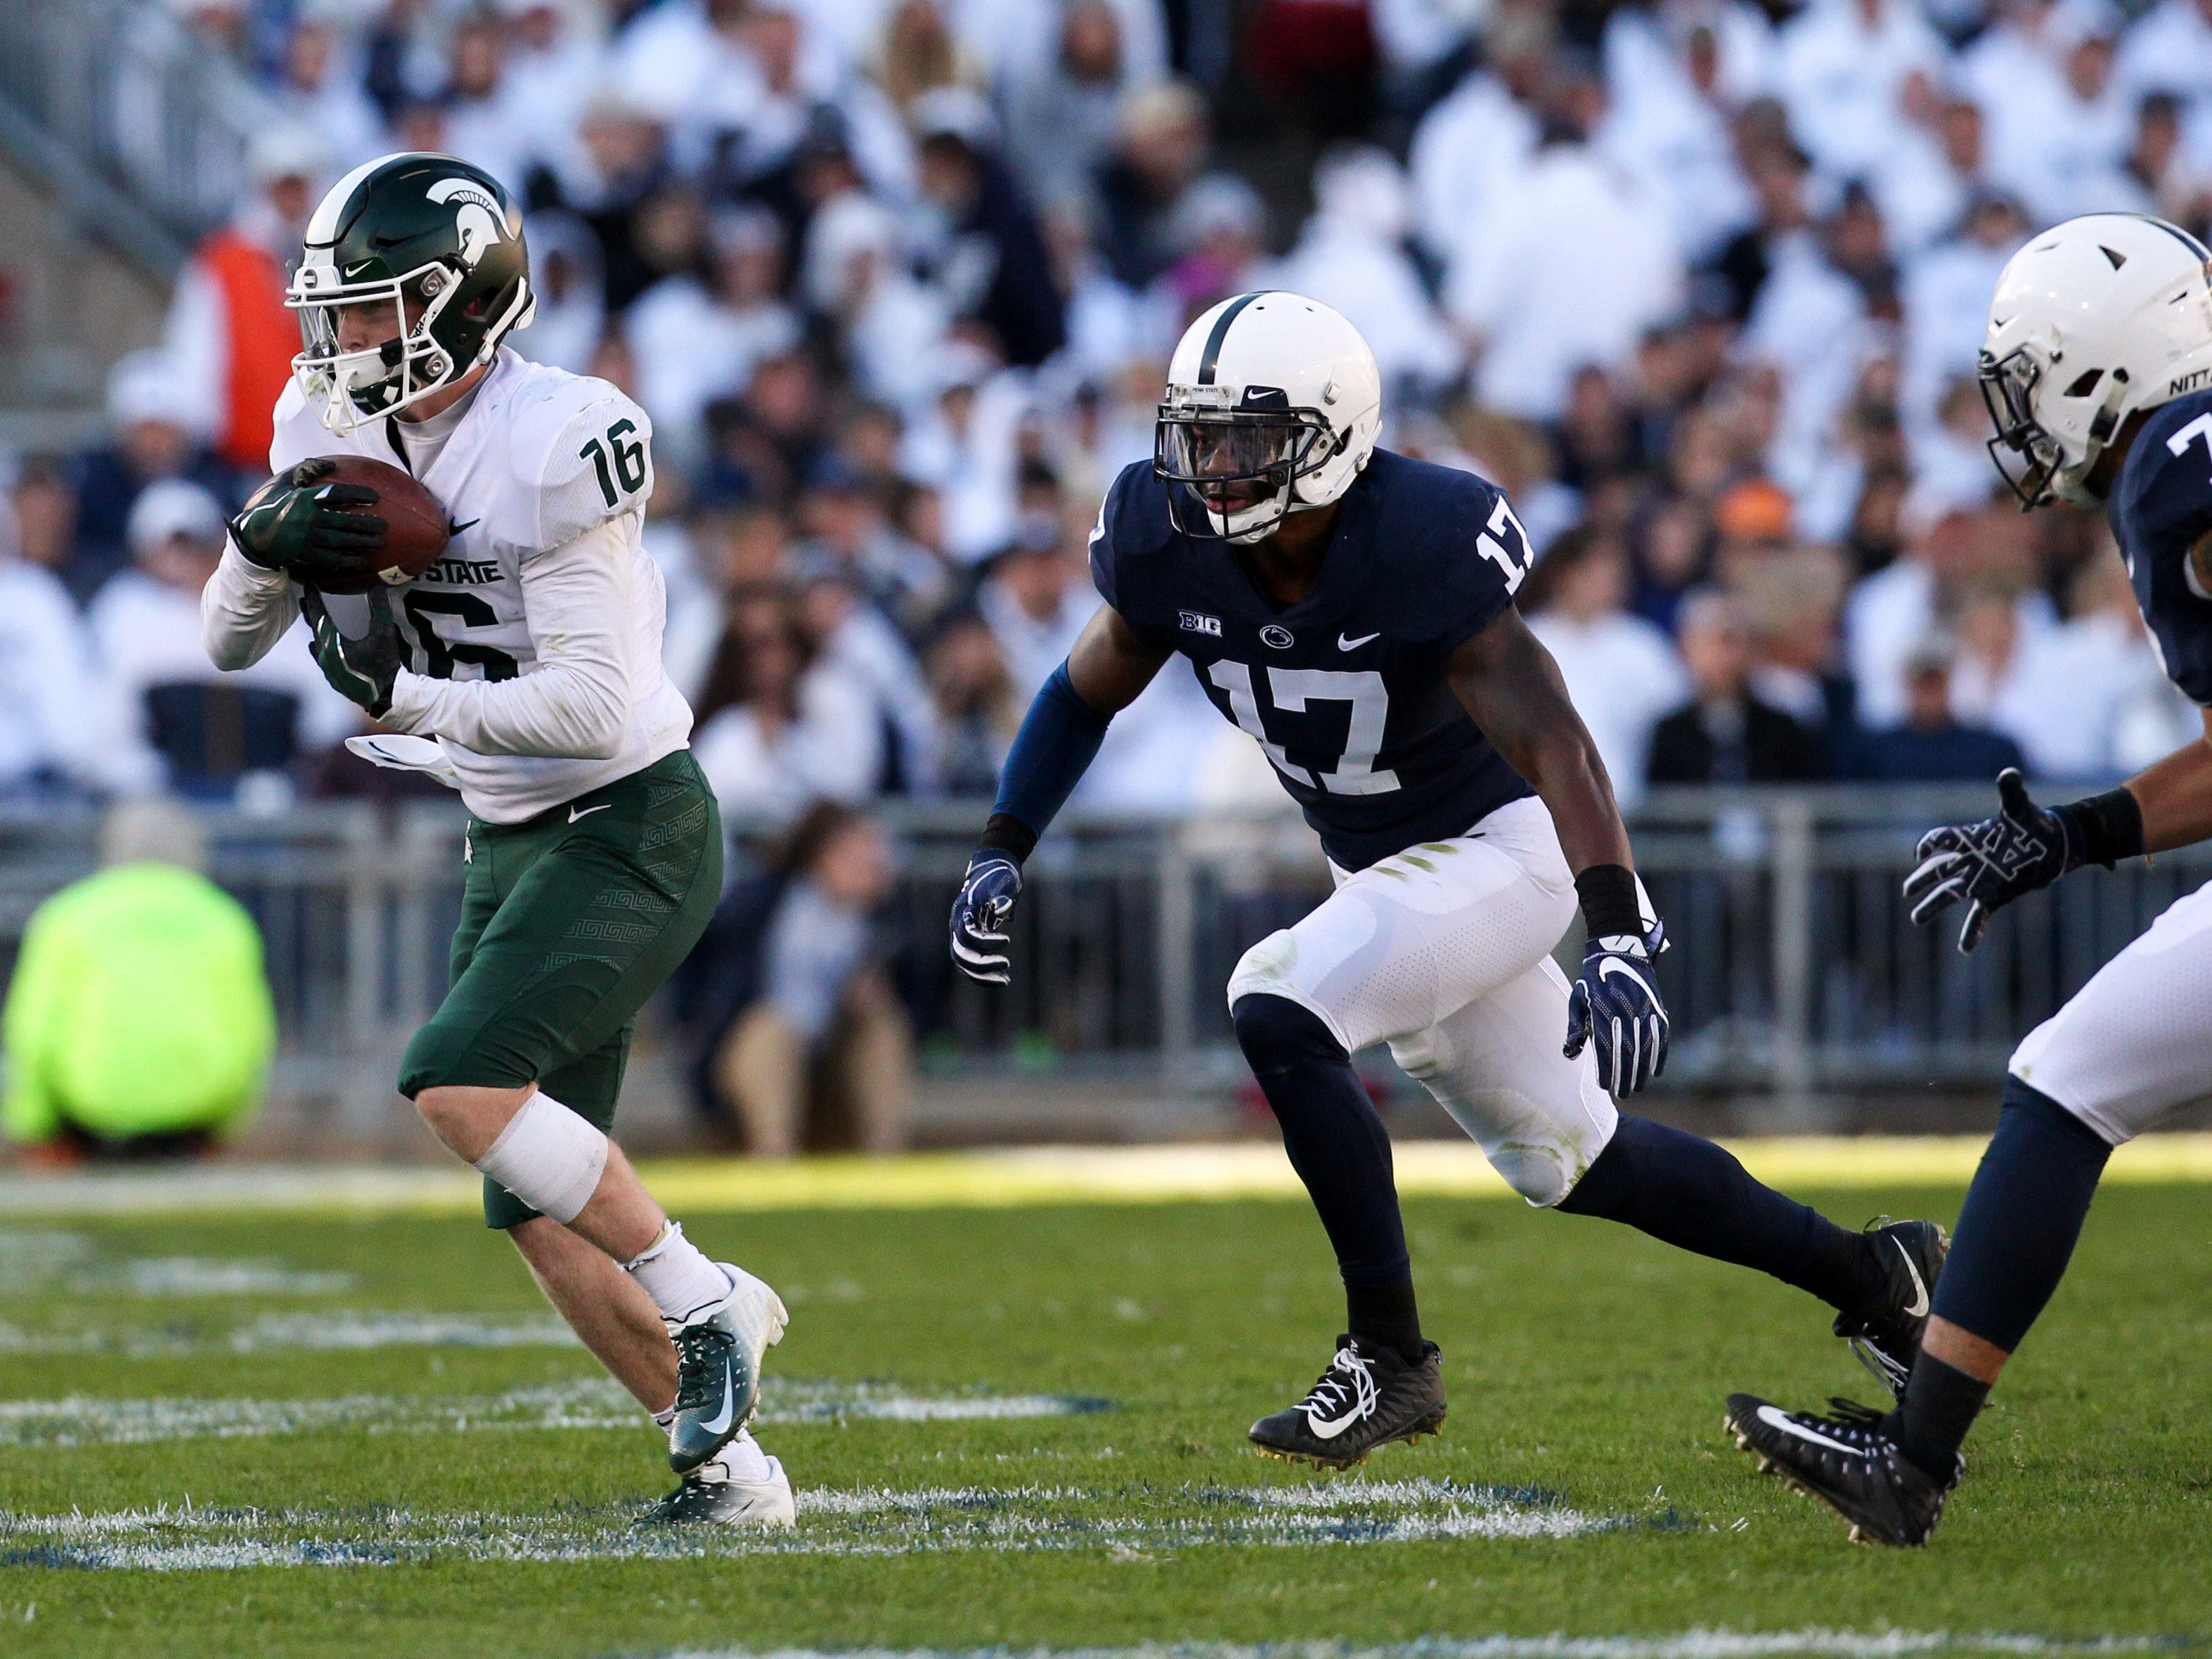 Michigan State Spartans wide receiver Brandon Sowards (16) makes a catch during the second quarter against the Penn State Nittany Lions at Beaver Stadium. Mandatory Credit: Matthew O'Haren-USA TODAY Sports